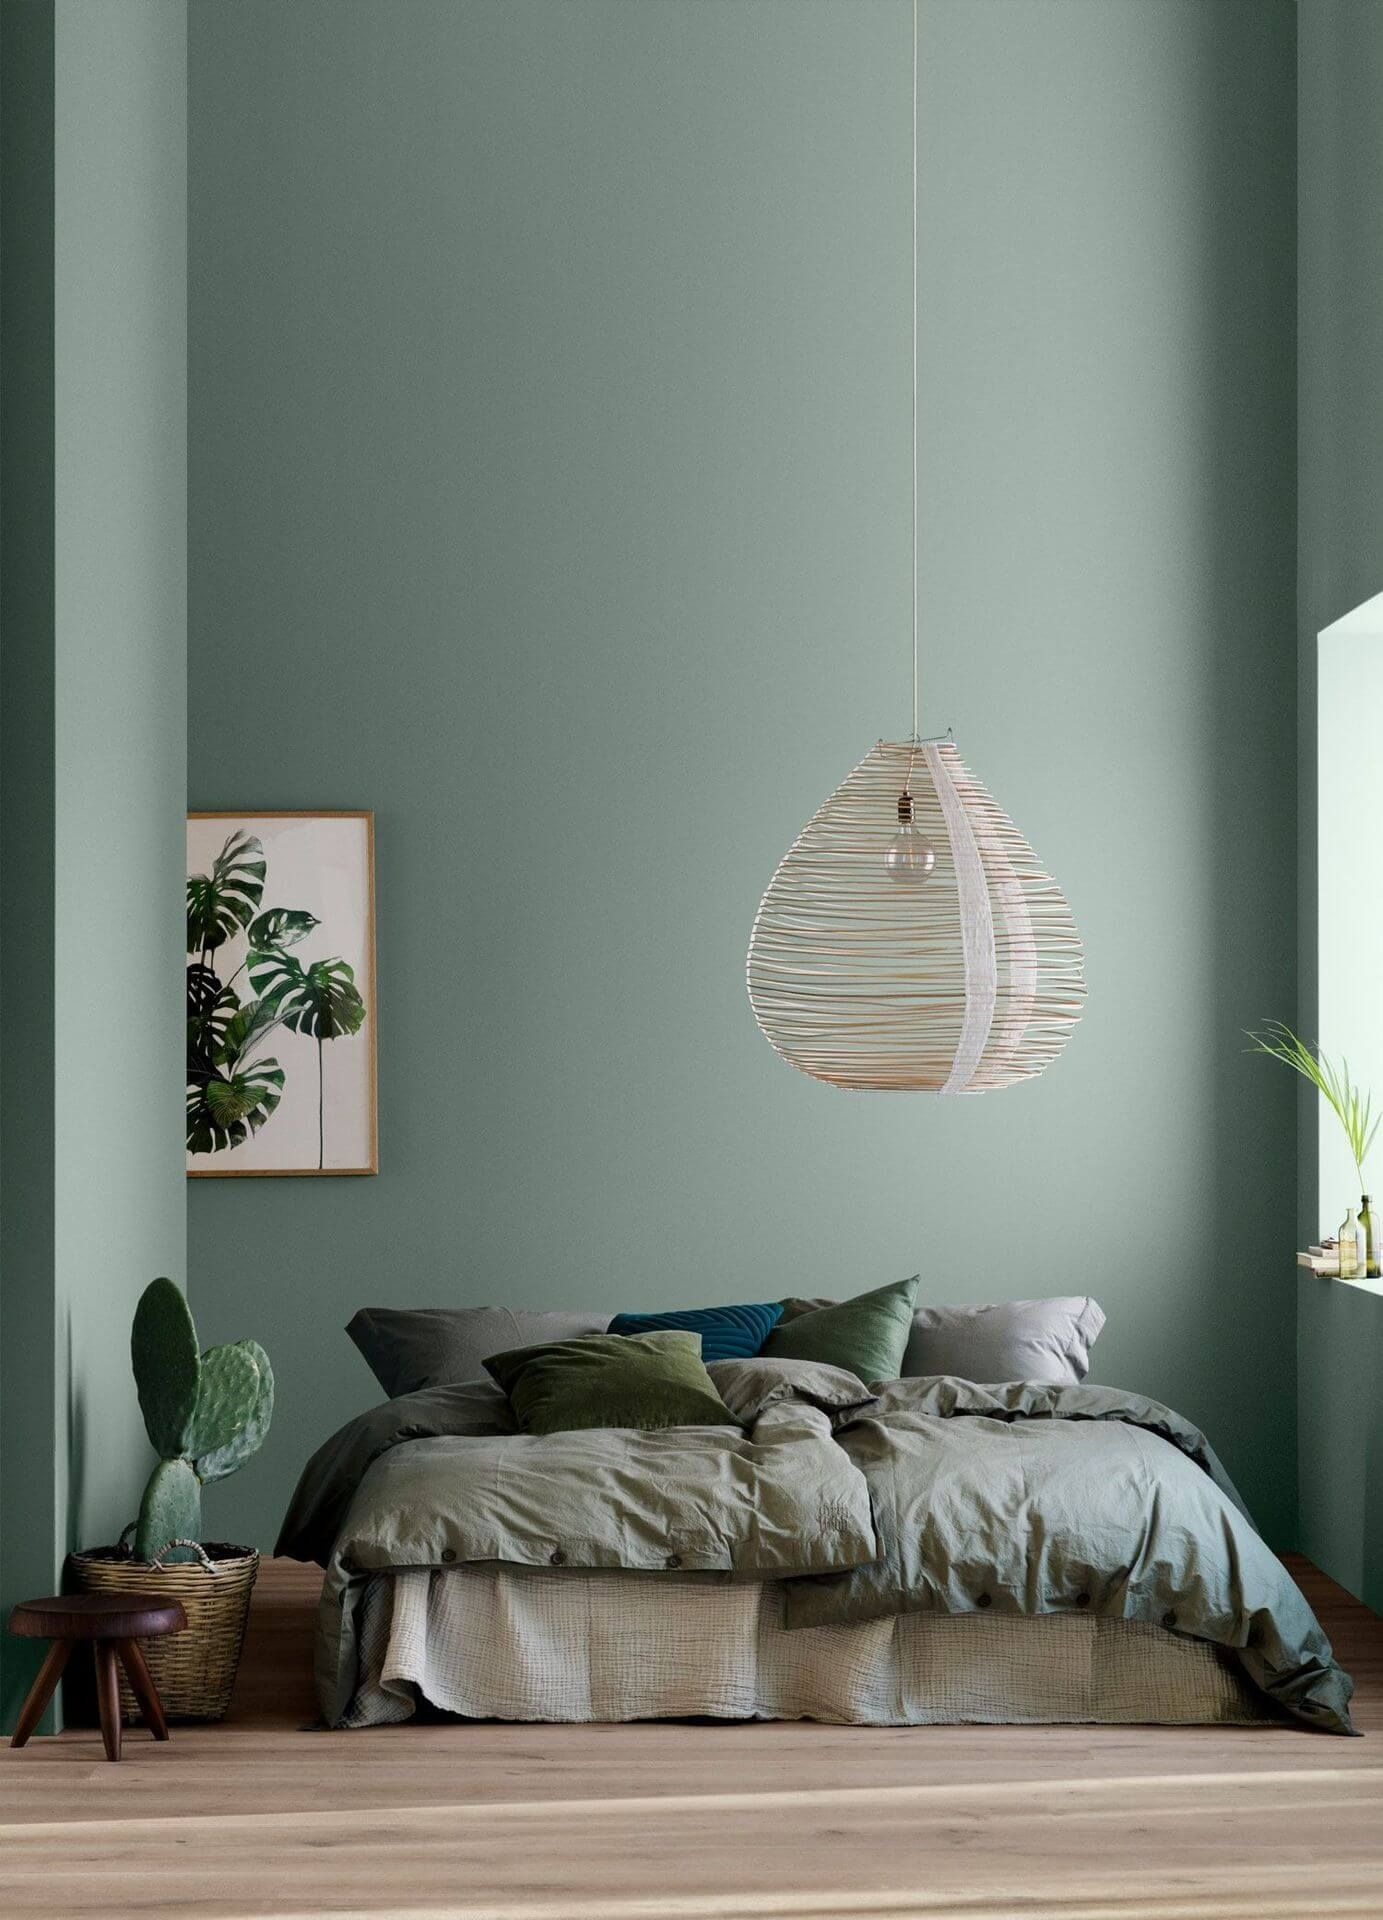 Decorating with Modern Earthy Home Decor images